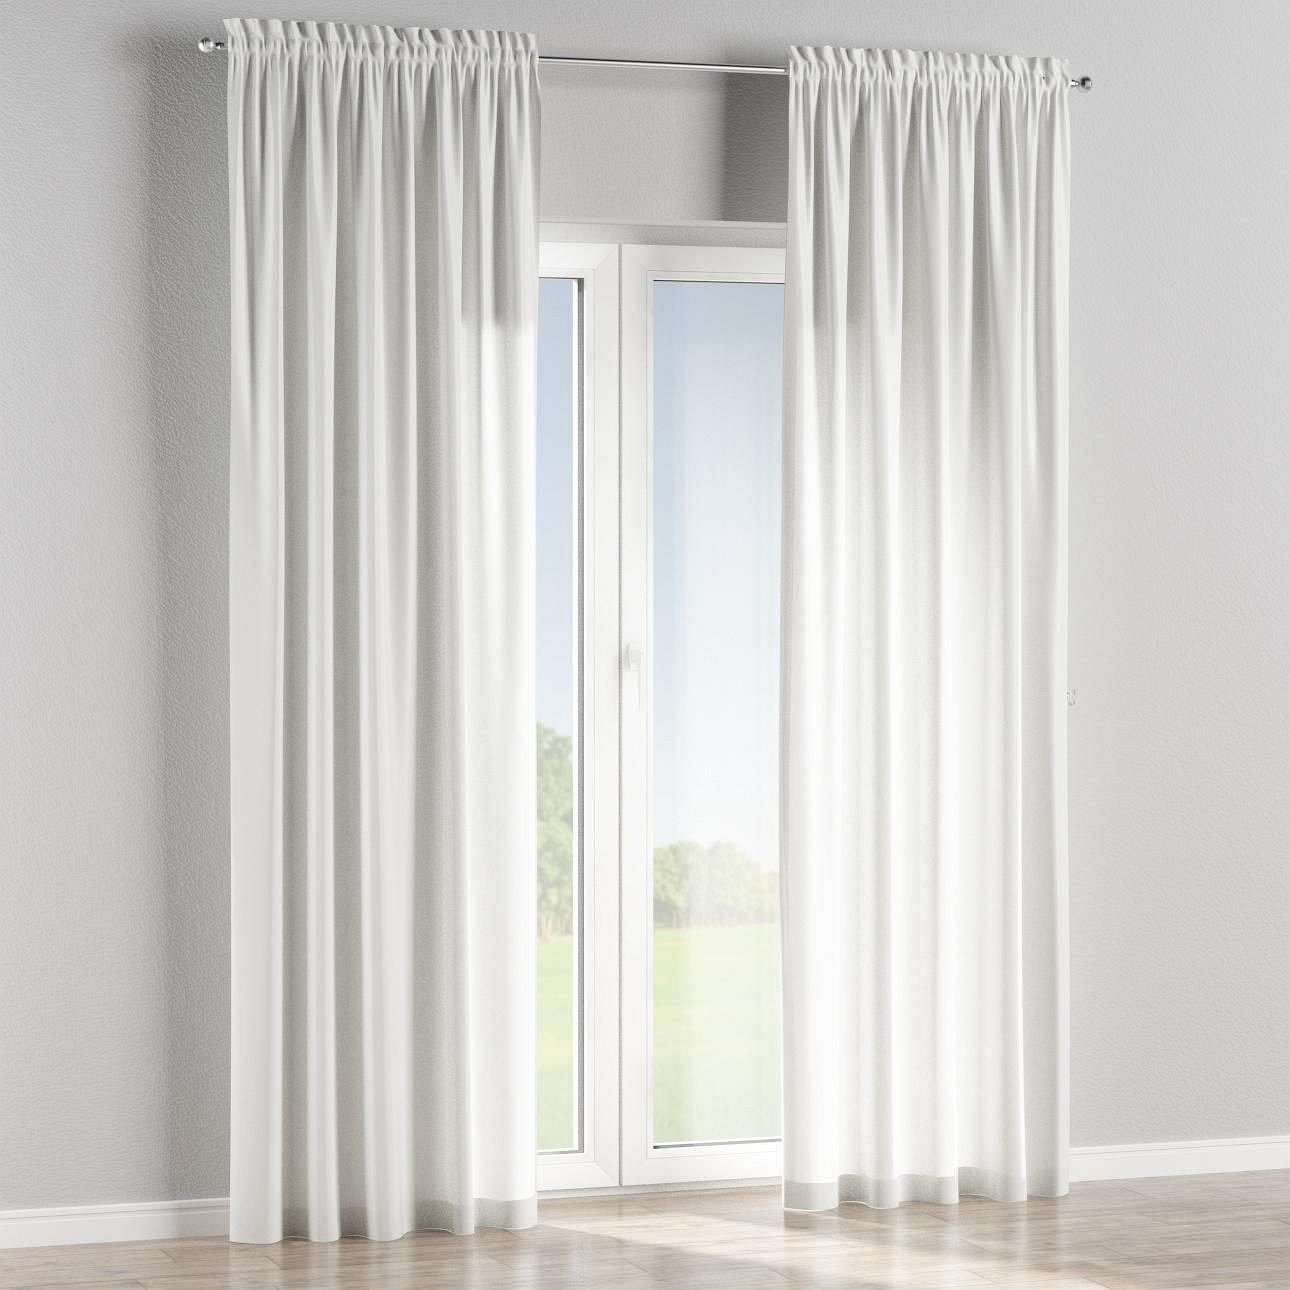 Slot and frill lined curtains in collection Cardiff, fabric: 136-24